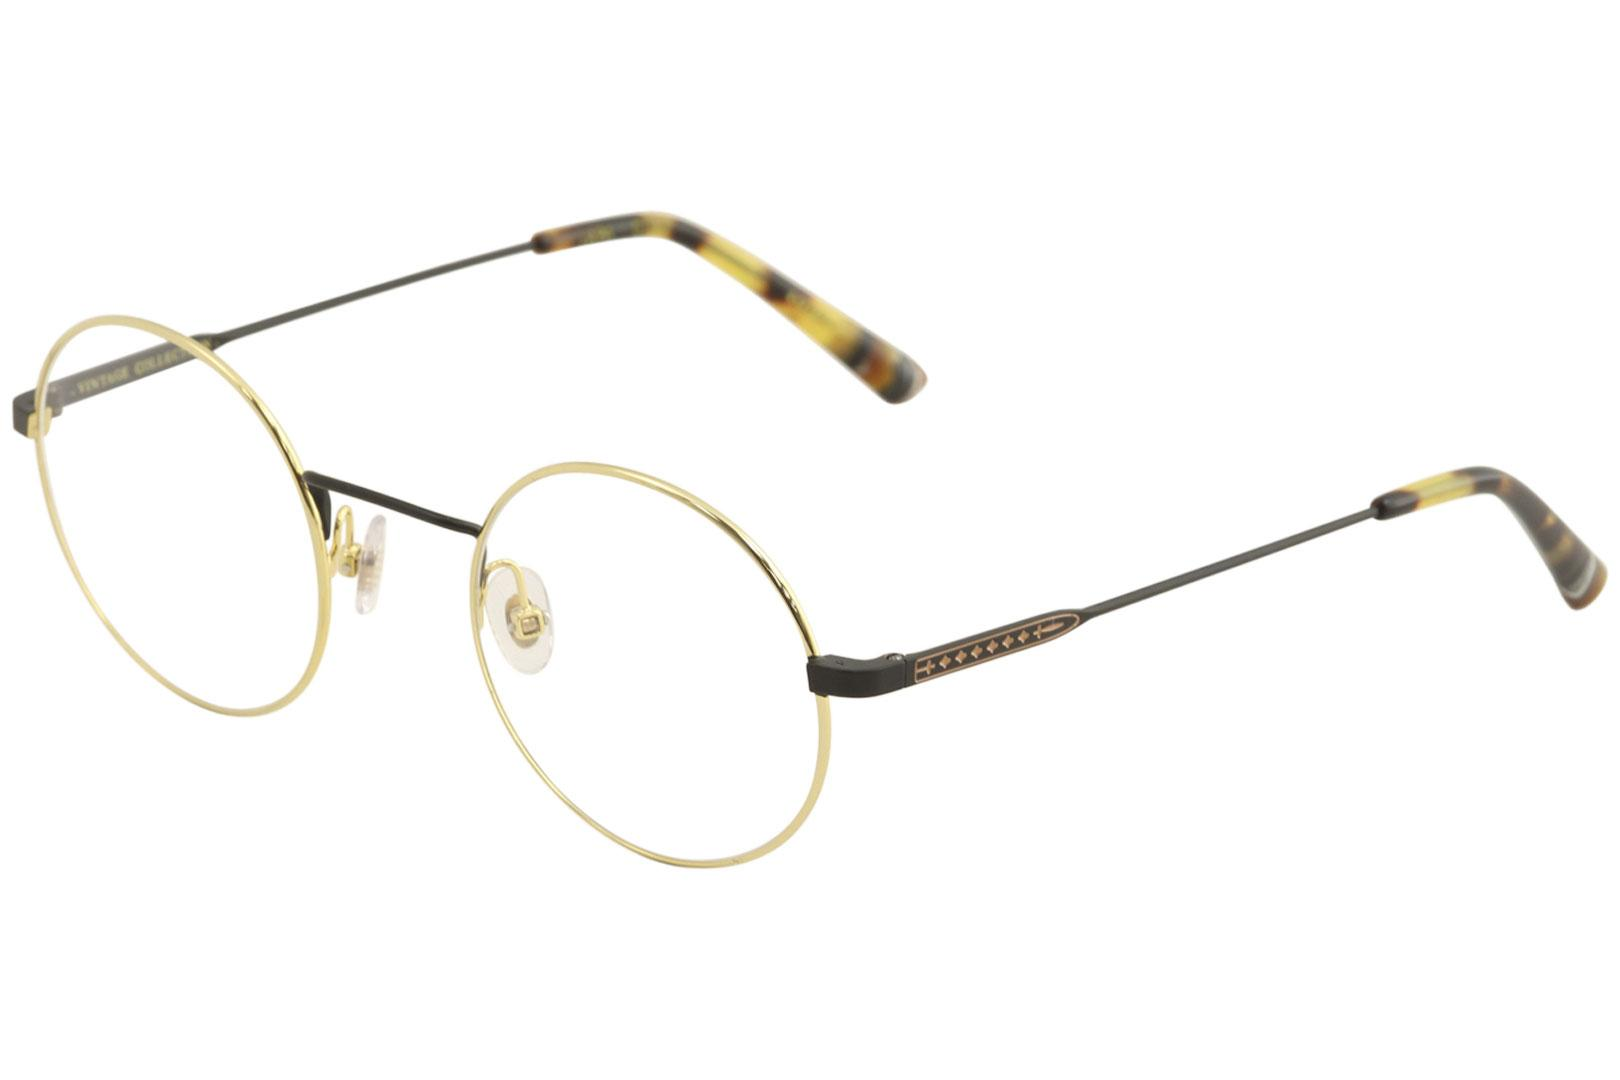 Image of Etnia Barcelona Men's Eyeglasses Vintage Collection Lapa Full Rim Optical Frame - Gold - Lens 47 Bridge 23 Temple 140mm